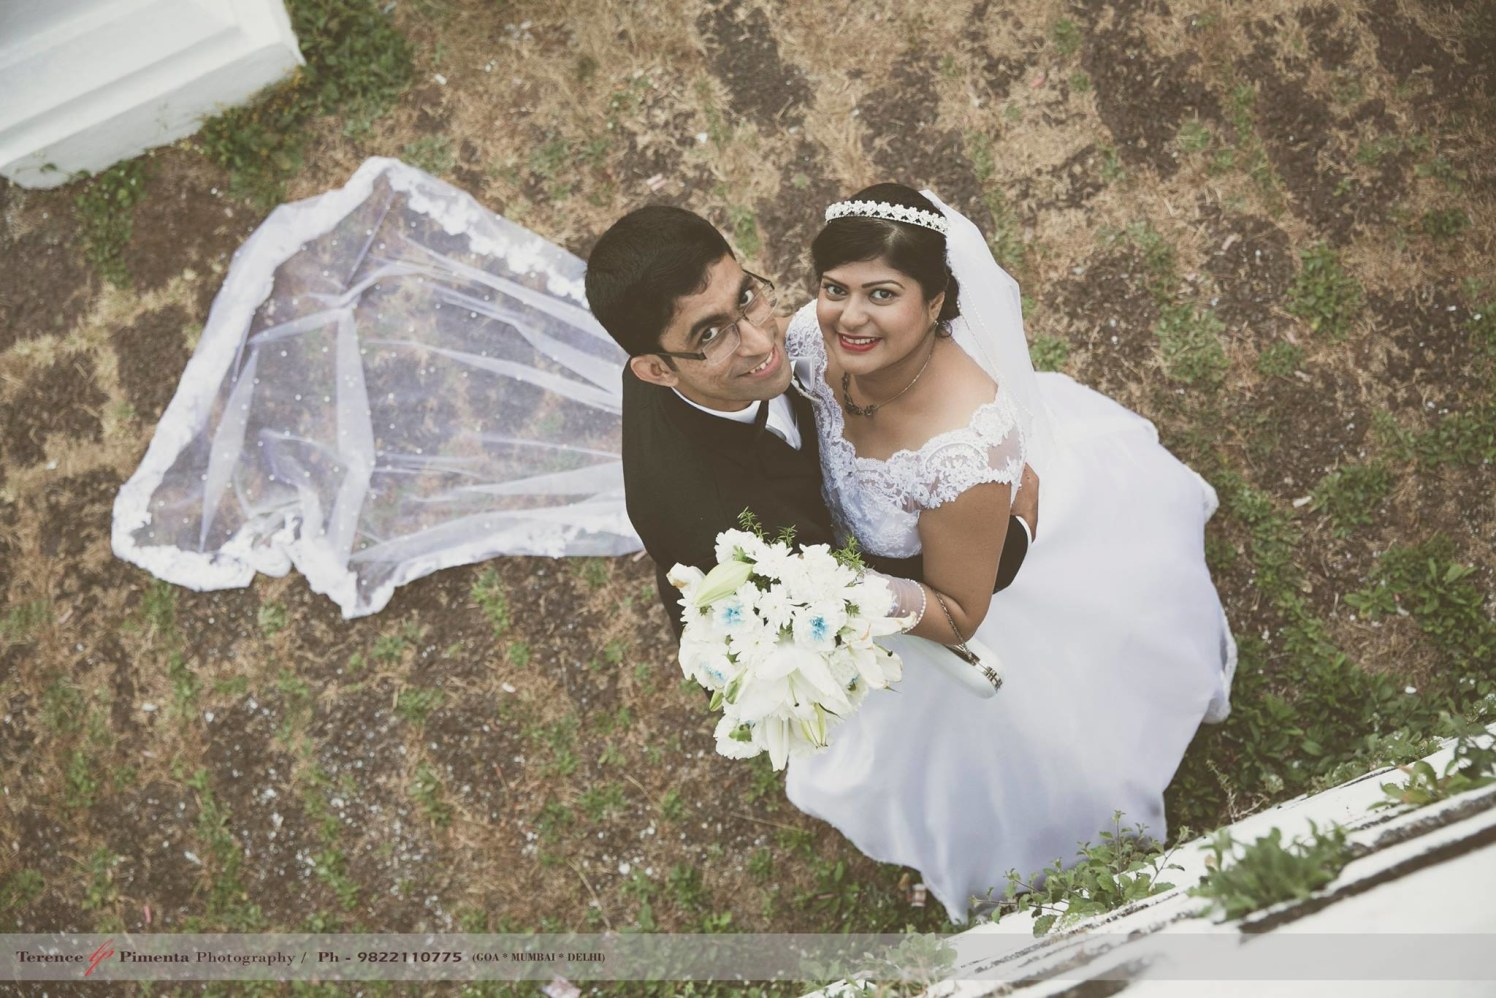 Aerial Shot Of Bubbly Bridegroom During Wedding Photoshoot by Terence Savio Pimenta Wedding-photography | Weddings Photos & Ideas